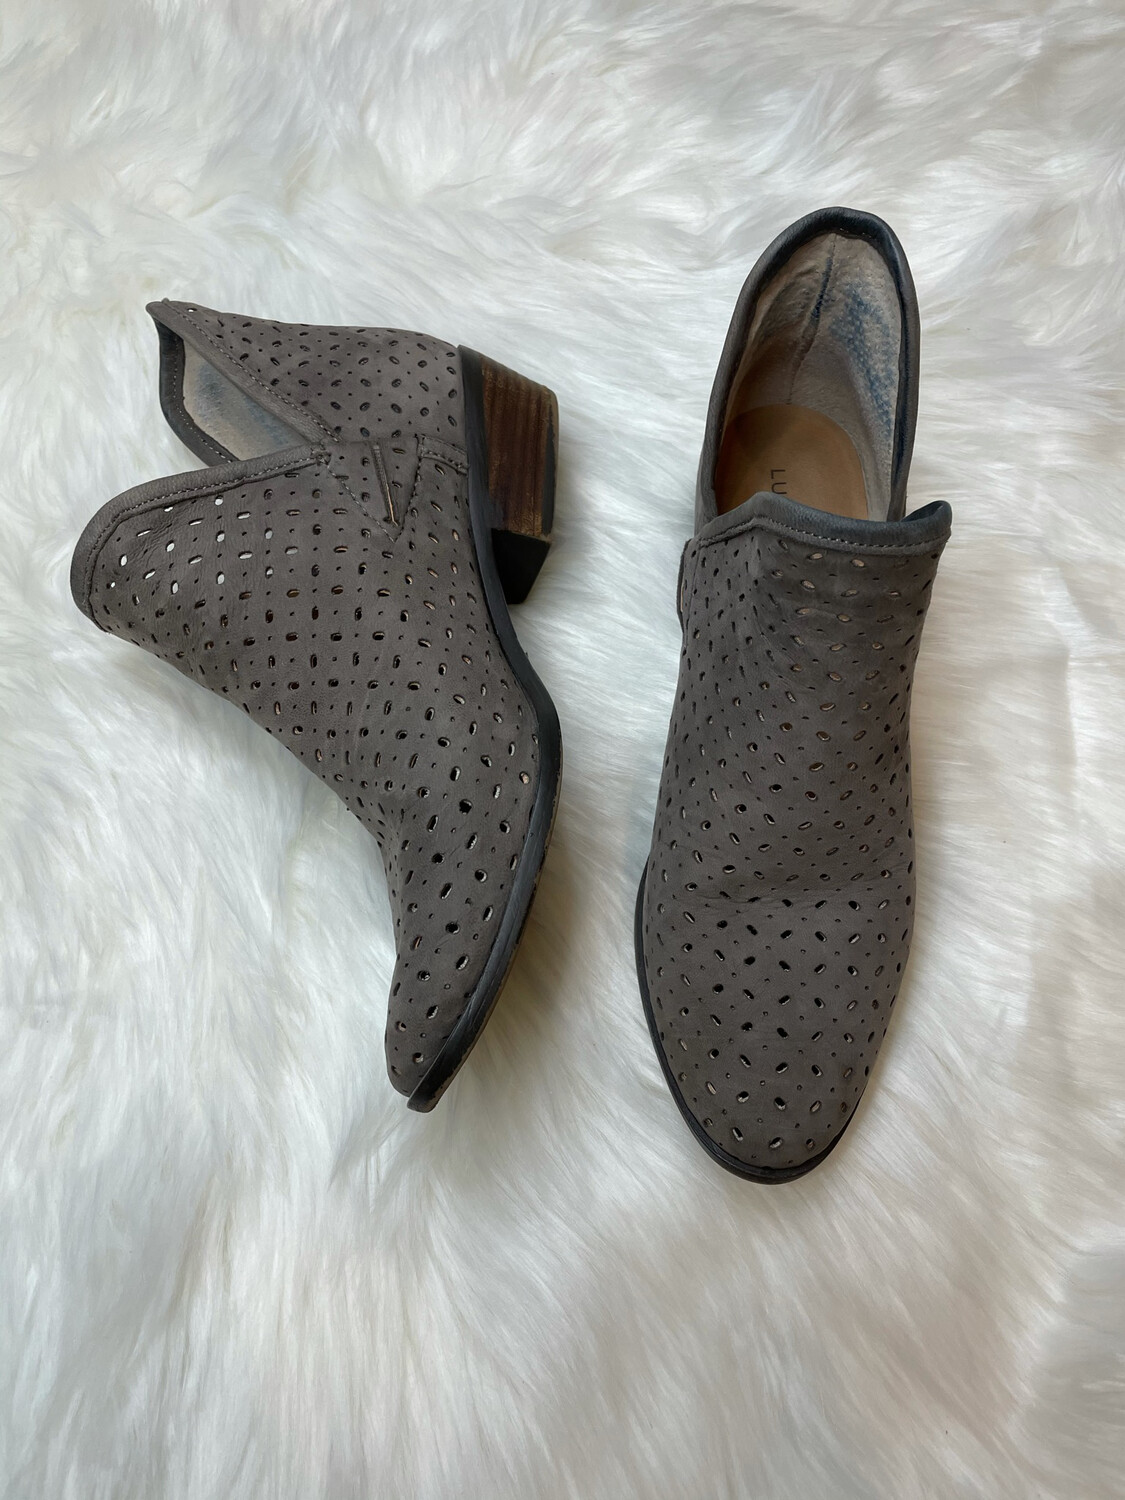 Lucky Brand Grey Slip On Ankle Booties - 9.5